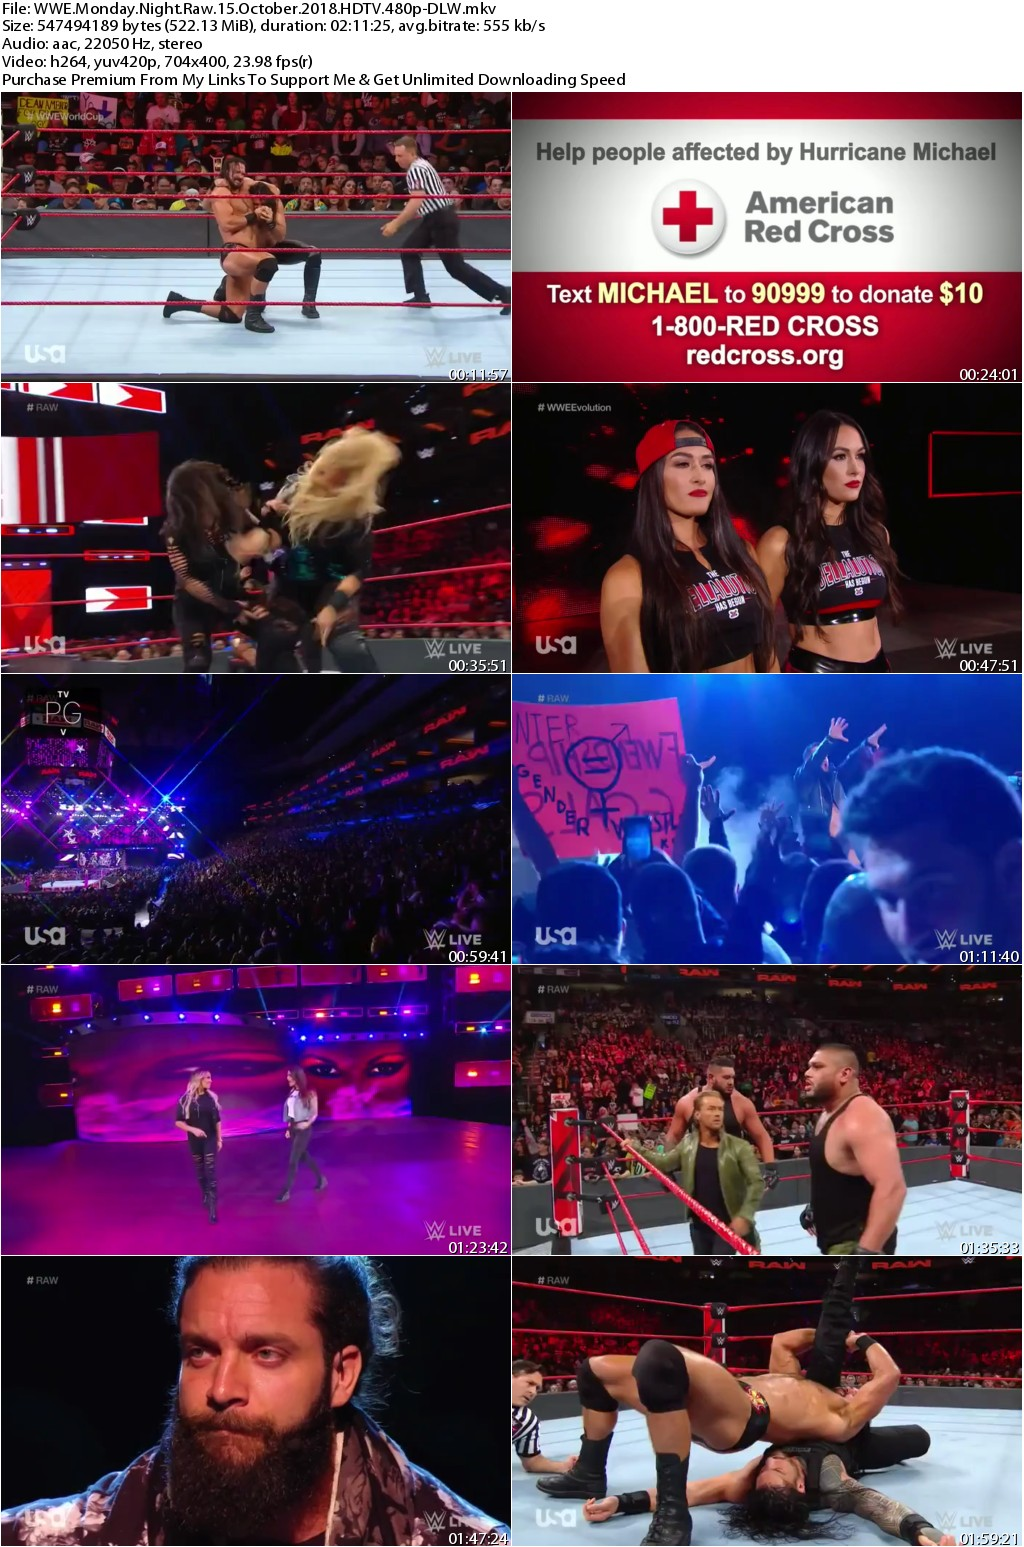 WWE Monday Night Raw 15 October 2018 HDTV 480p-DLW